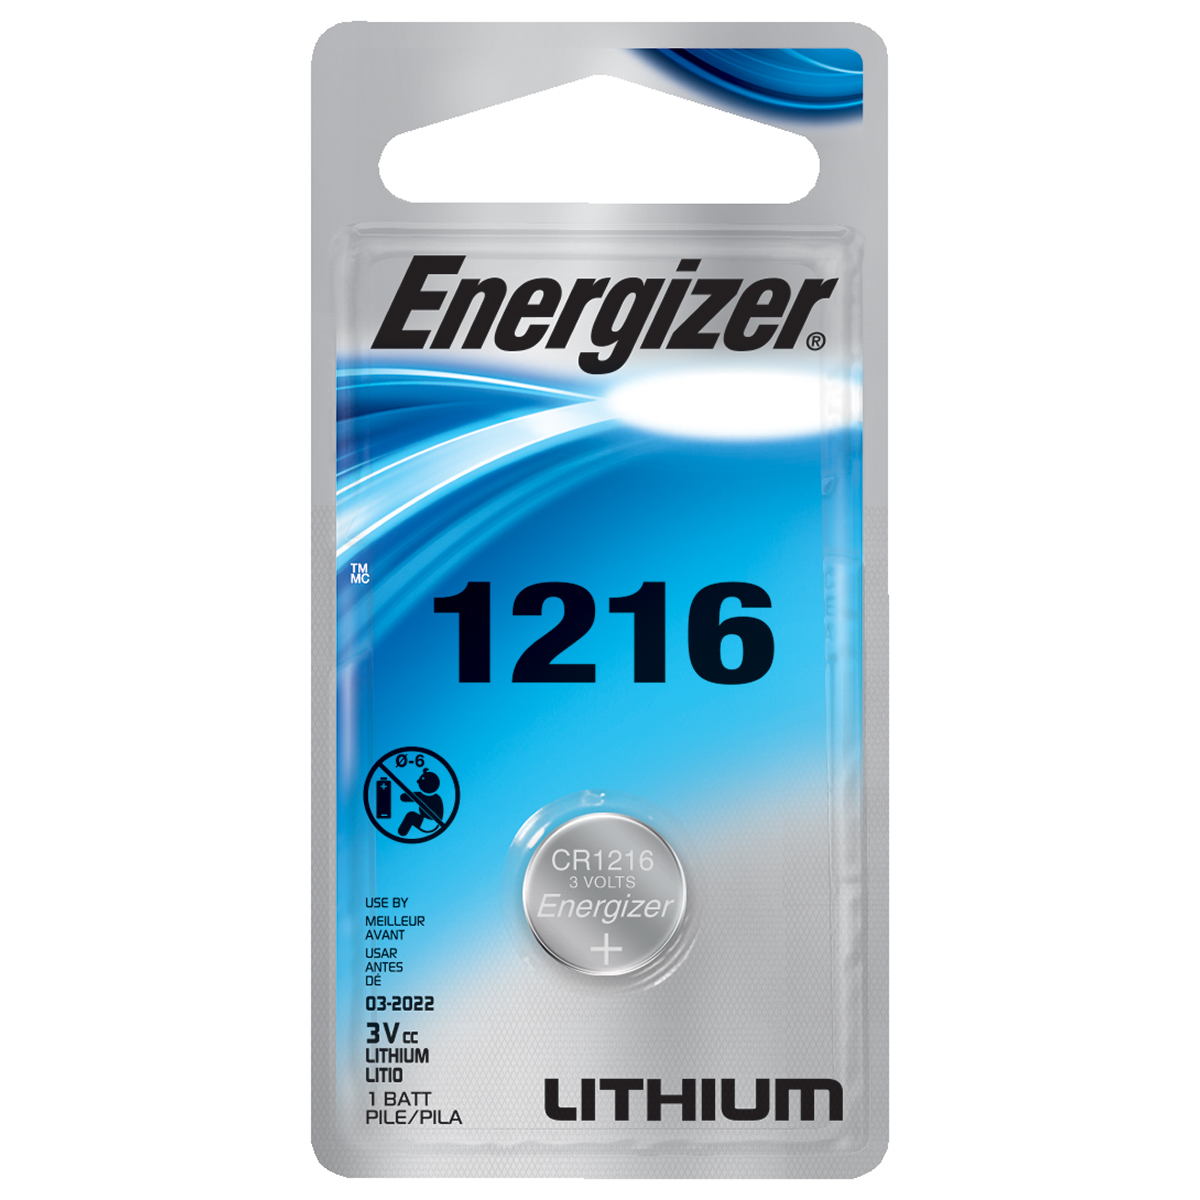 Energizer Lithium Button Cell Battery, ECR1216 3V, 1-Pack